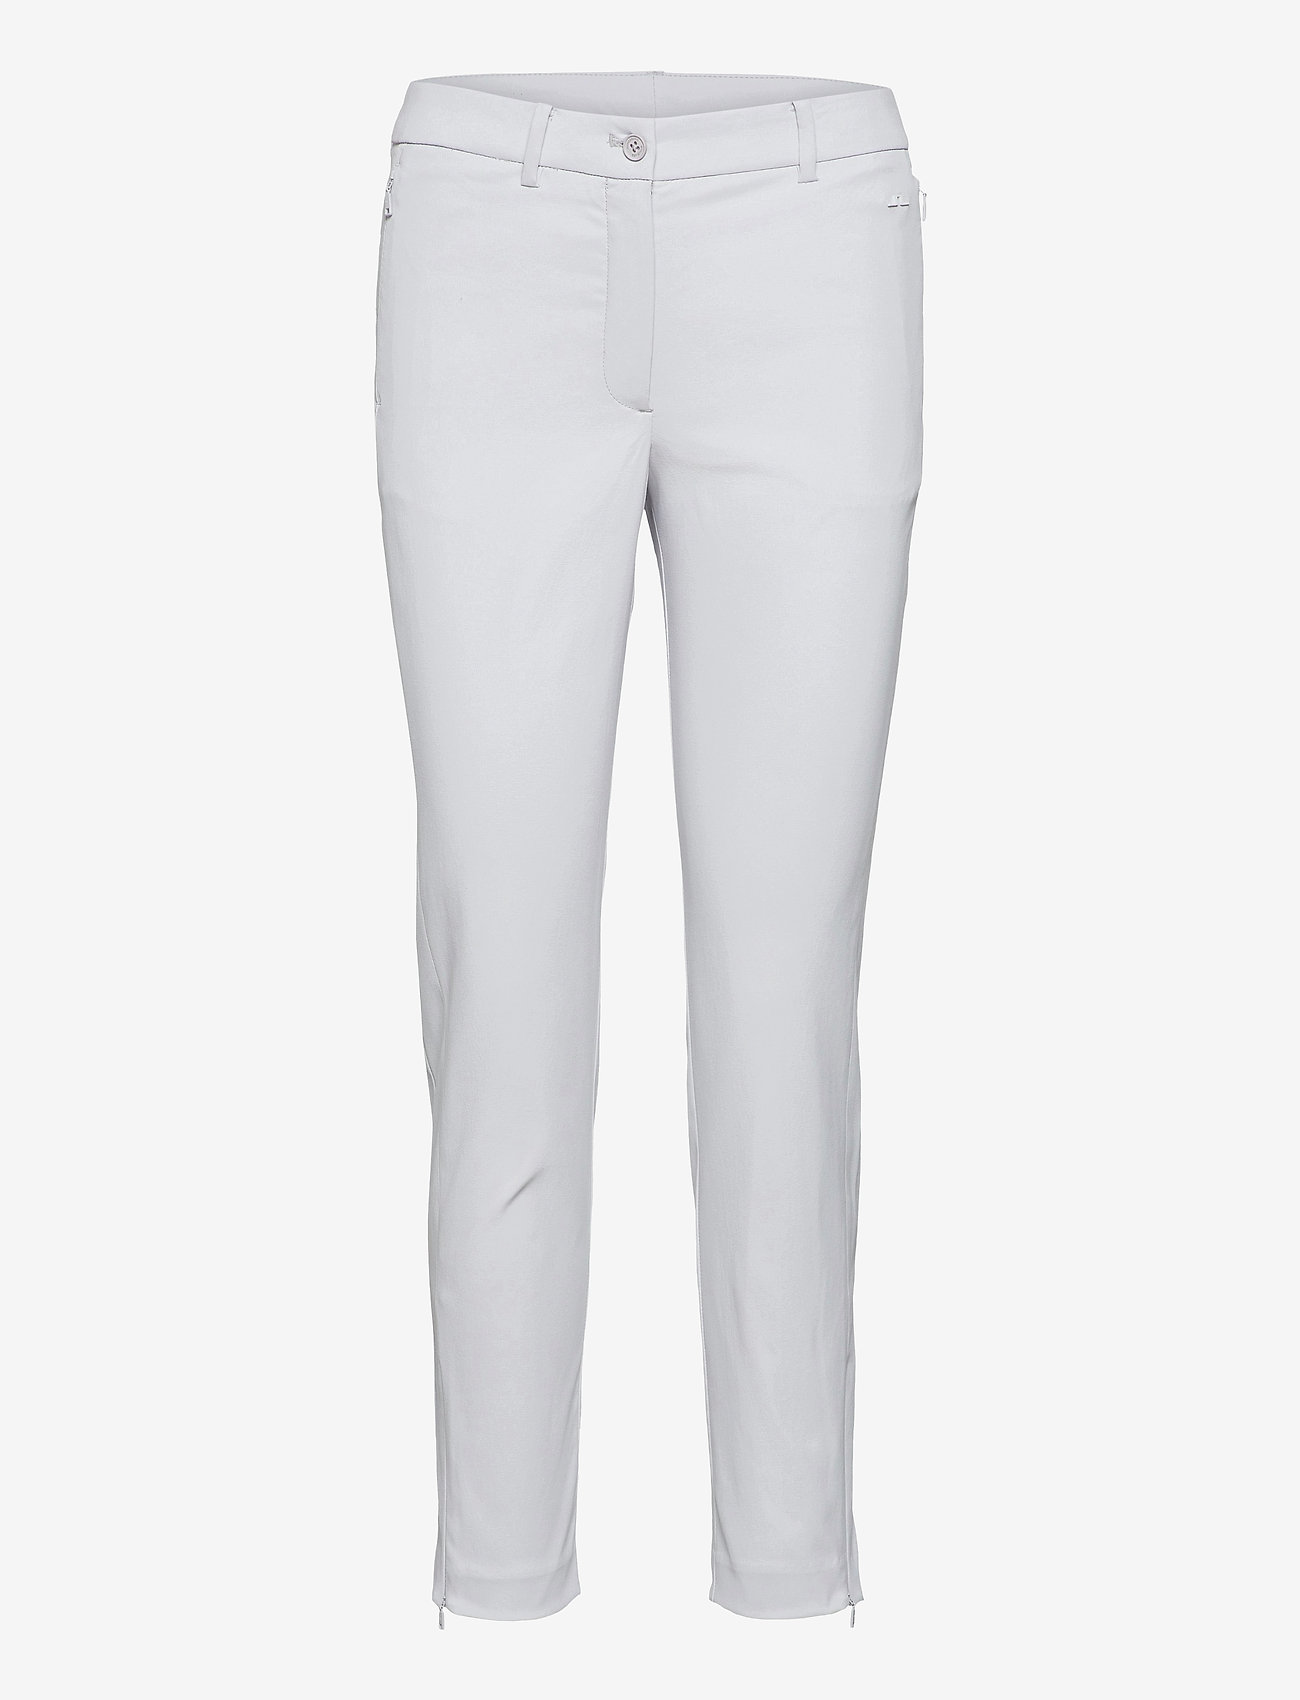 J. Lindeberg Golf - Dana Golf Pant - sports pants - light grey - 1